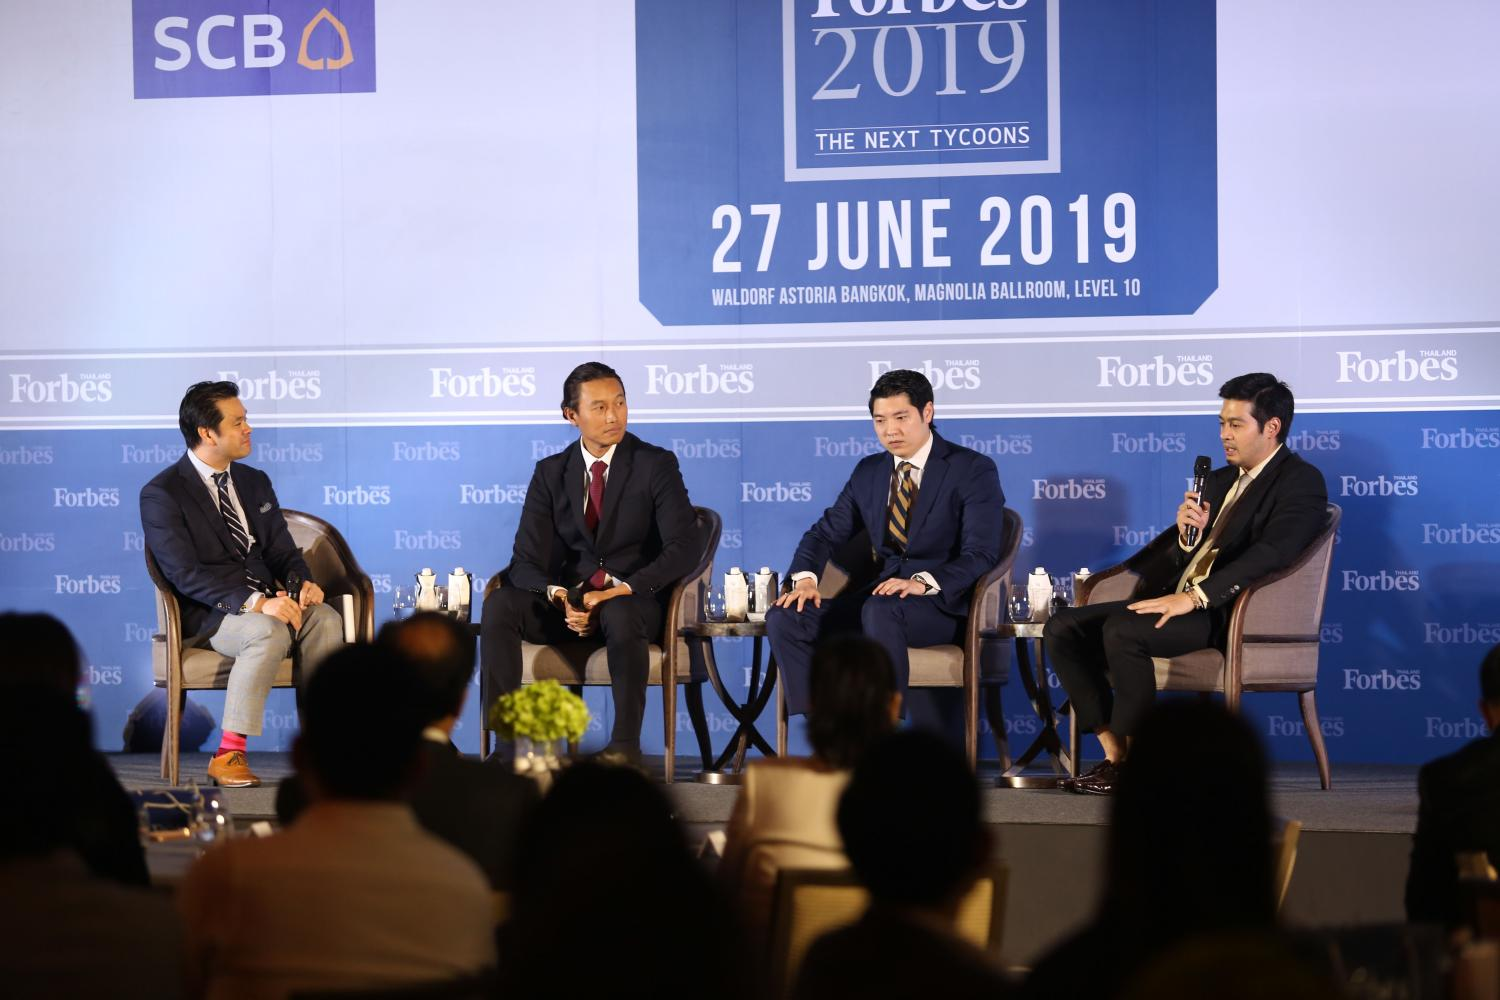 From rightPiti Bhirombhakdi, director of Boon Rawd Brewery Group; Tanit Chearavanont, managing director of LOTS Wholesale Solutions, an arm of the CP Group; and Chalermchai Mahagitsiri, CEO & President of the PM Group and Thoresen Group attend the Forbes Thailand Forum 2019.Varuth Hirunyatheb